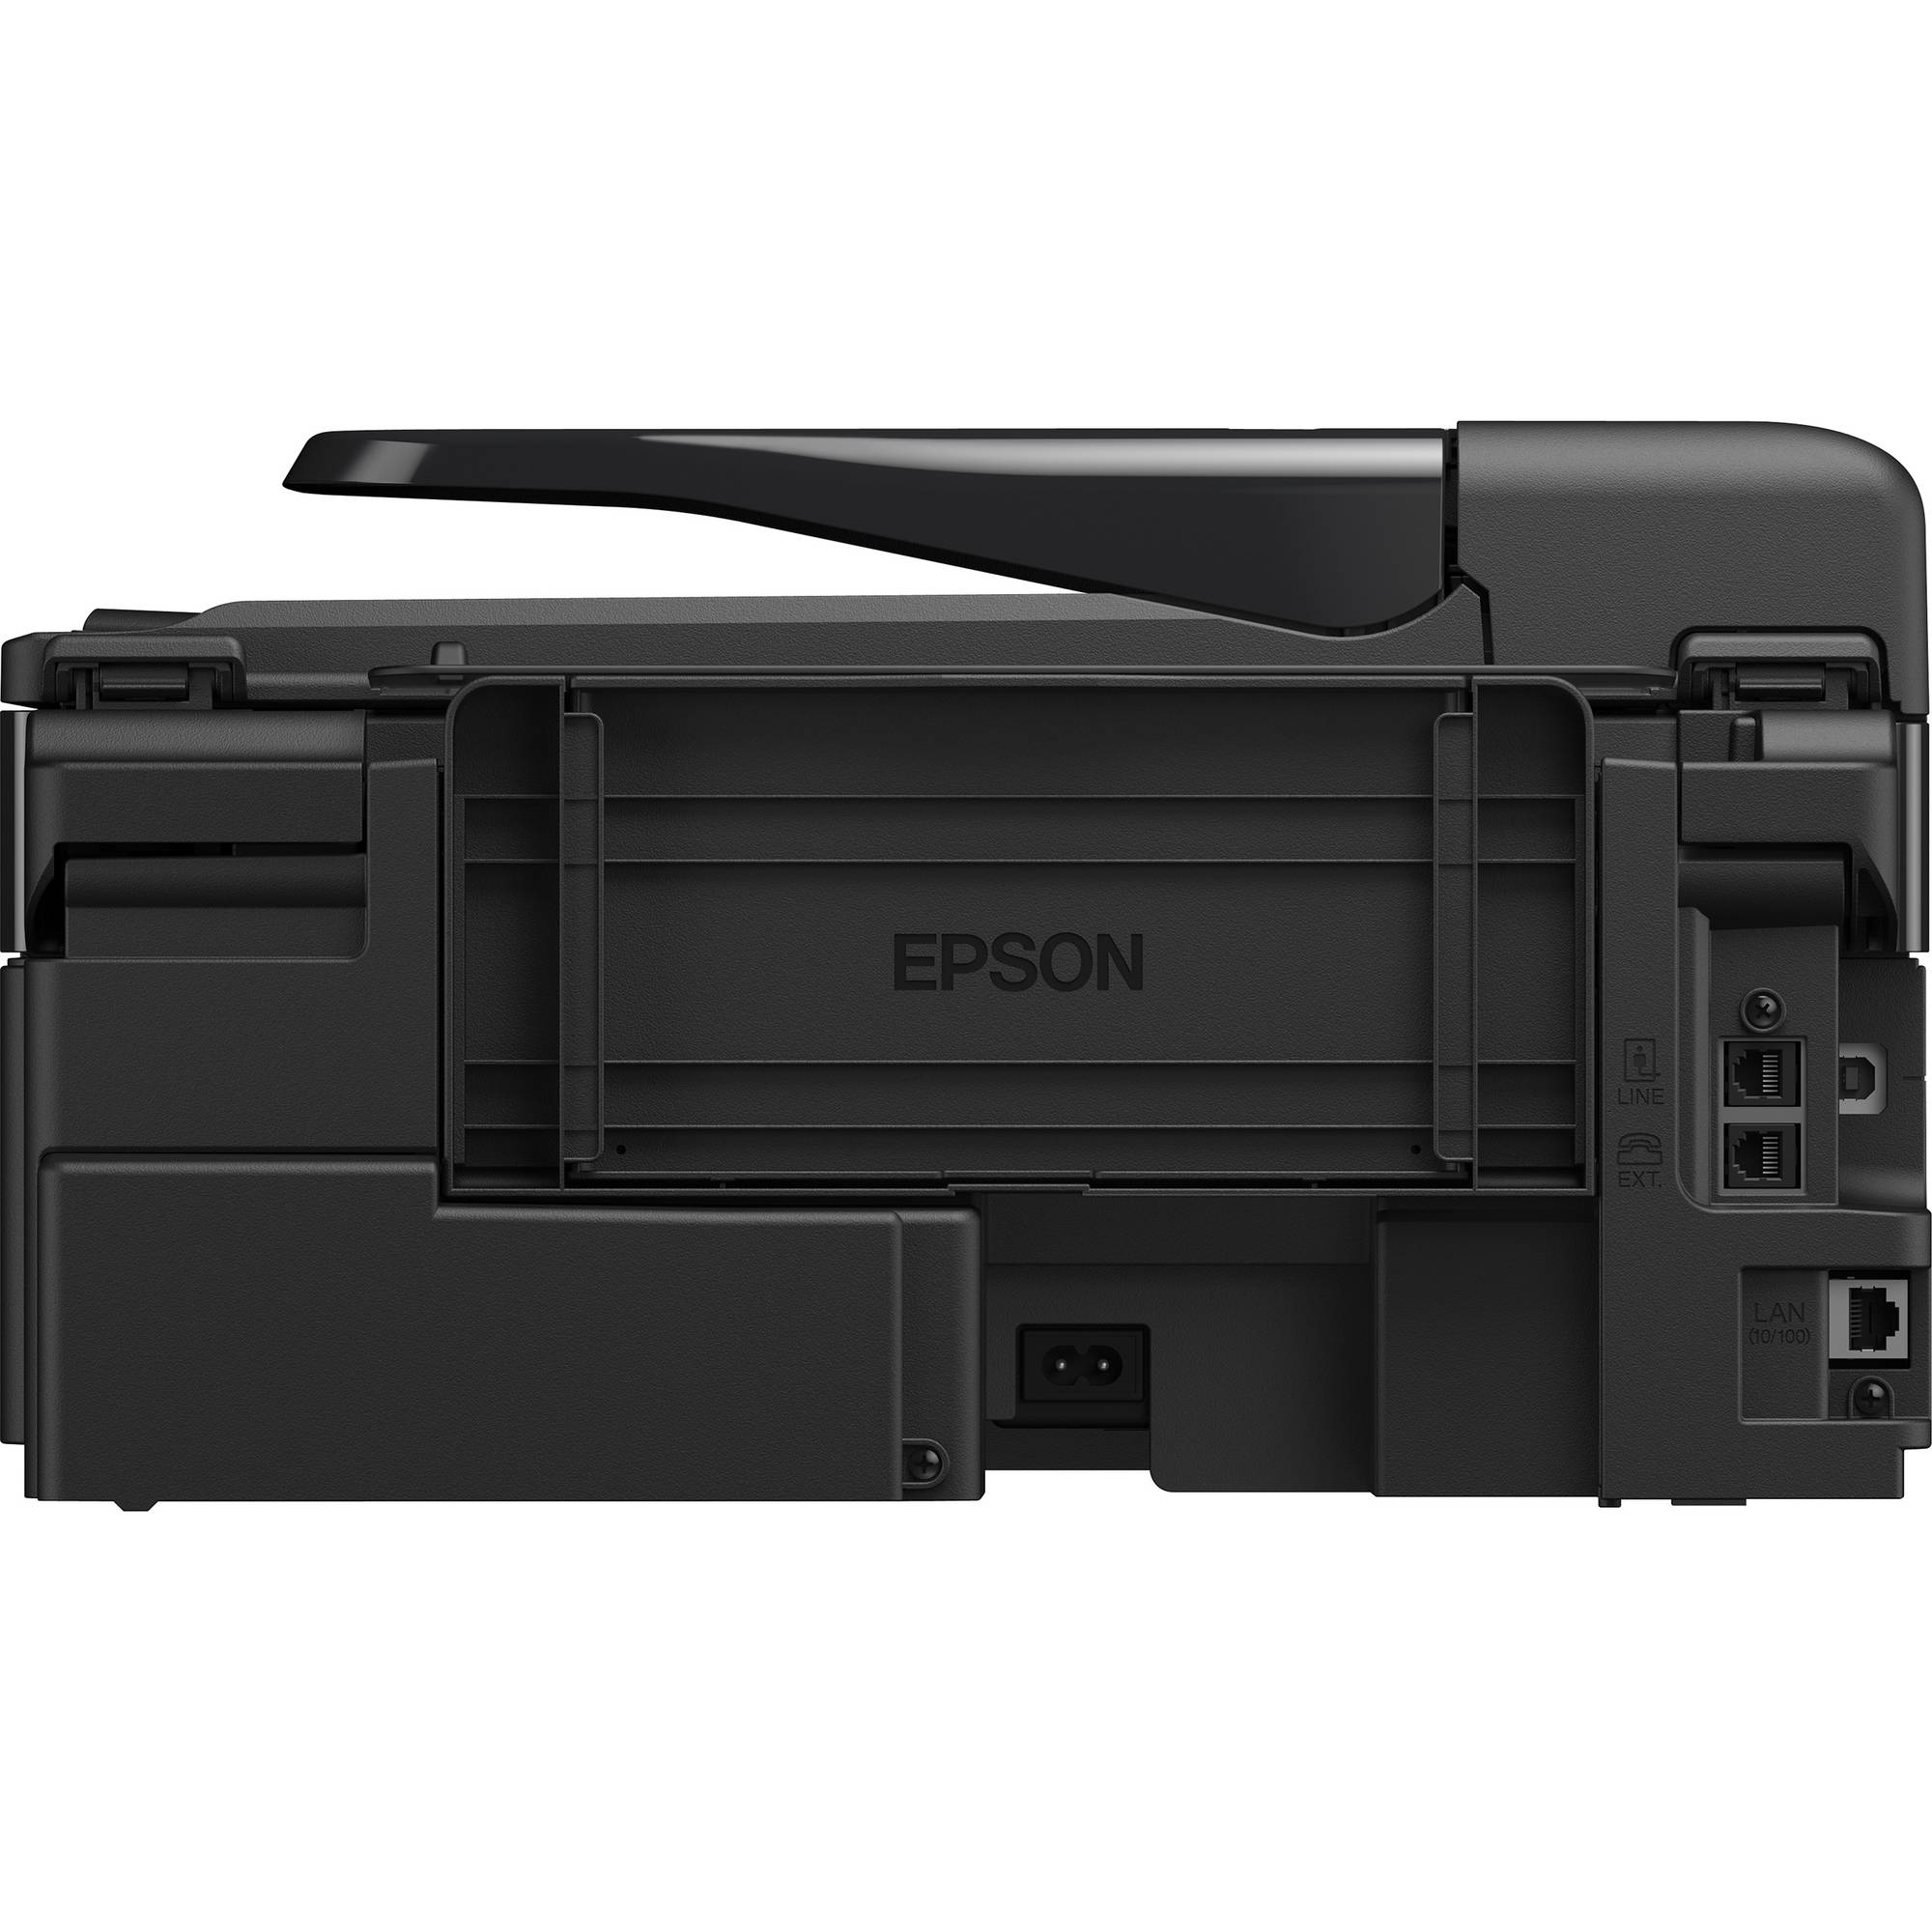 EPSON WF 2520 SCANNER DRIVERS DOWNLOAD FREE